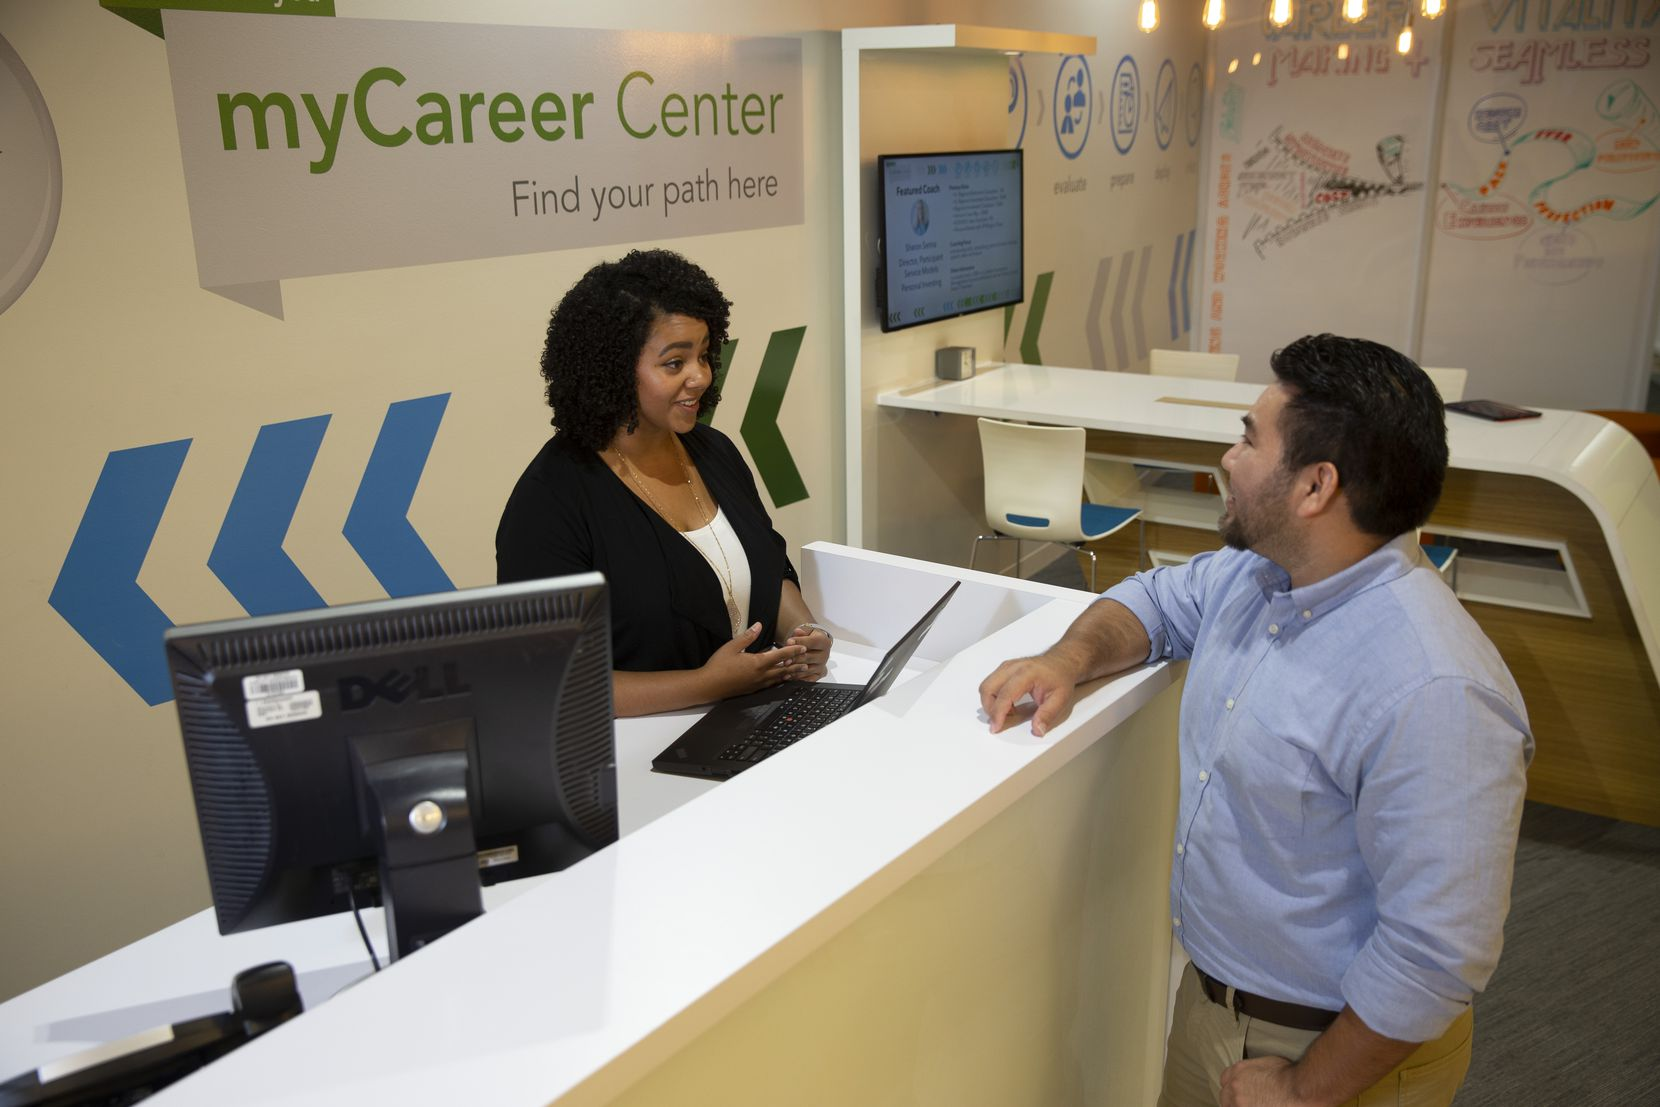 The MyCareer Center at Fidelity Investments' Westlake office.